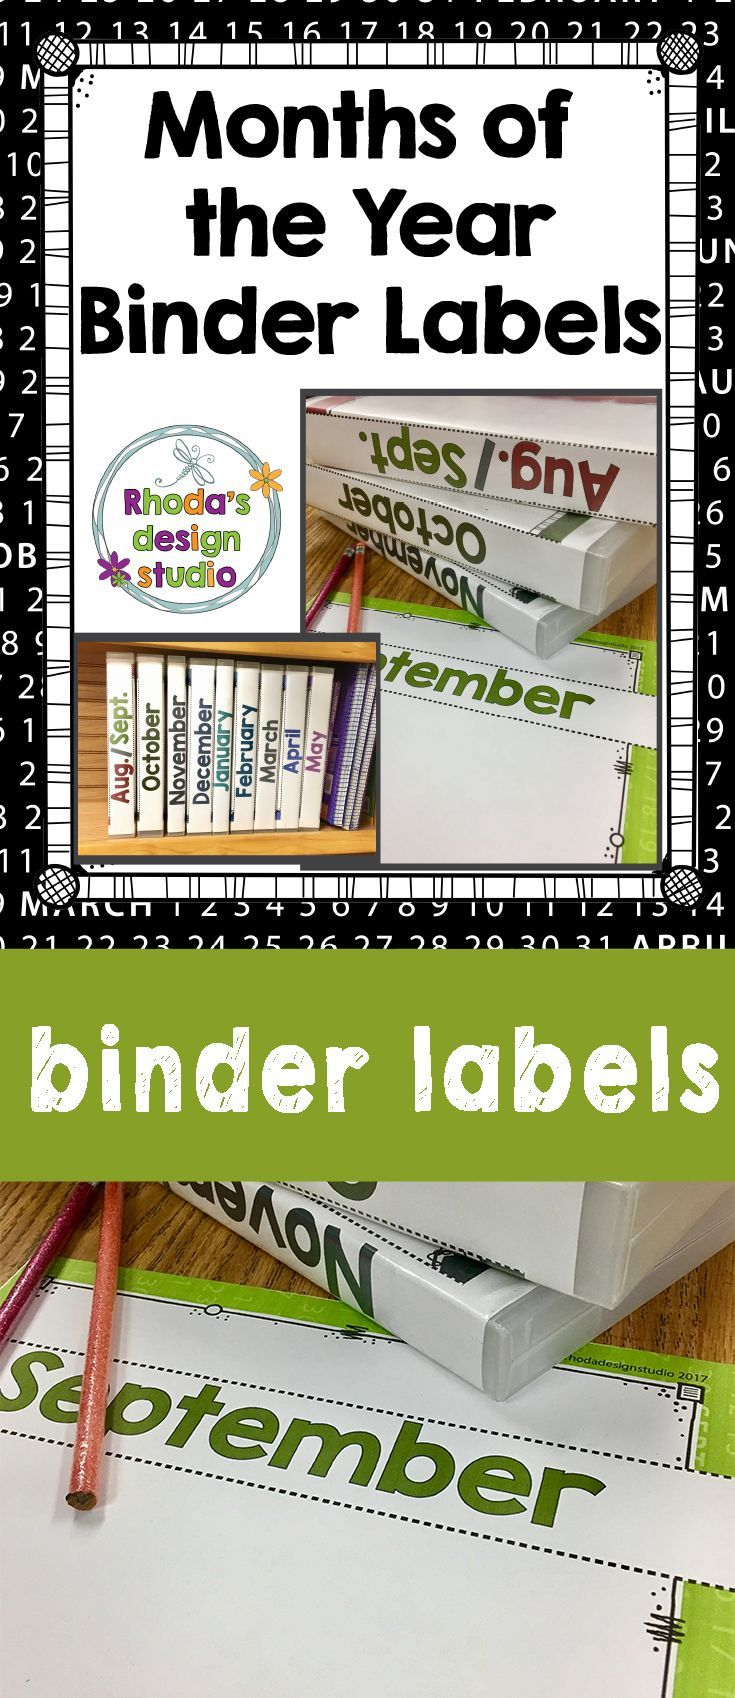 Organize your classroom with editable Months of the Year Binder Labels. They are designed to slip into the backs of binders with some of the label viewable on the front of the binder. Use the editable PowerPoint file to add the contents of the binder, ins